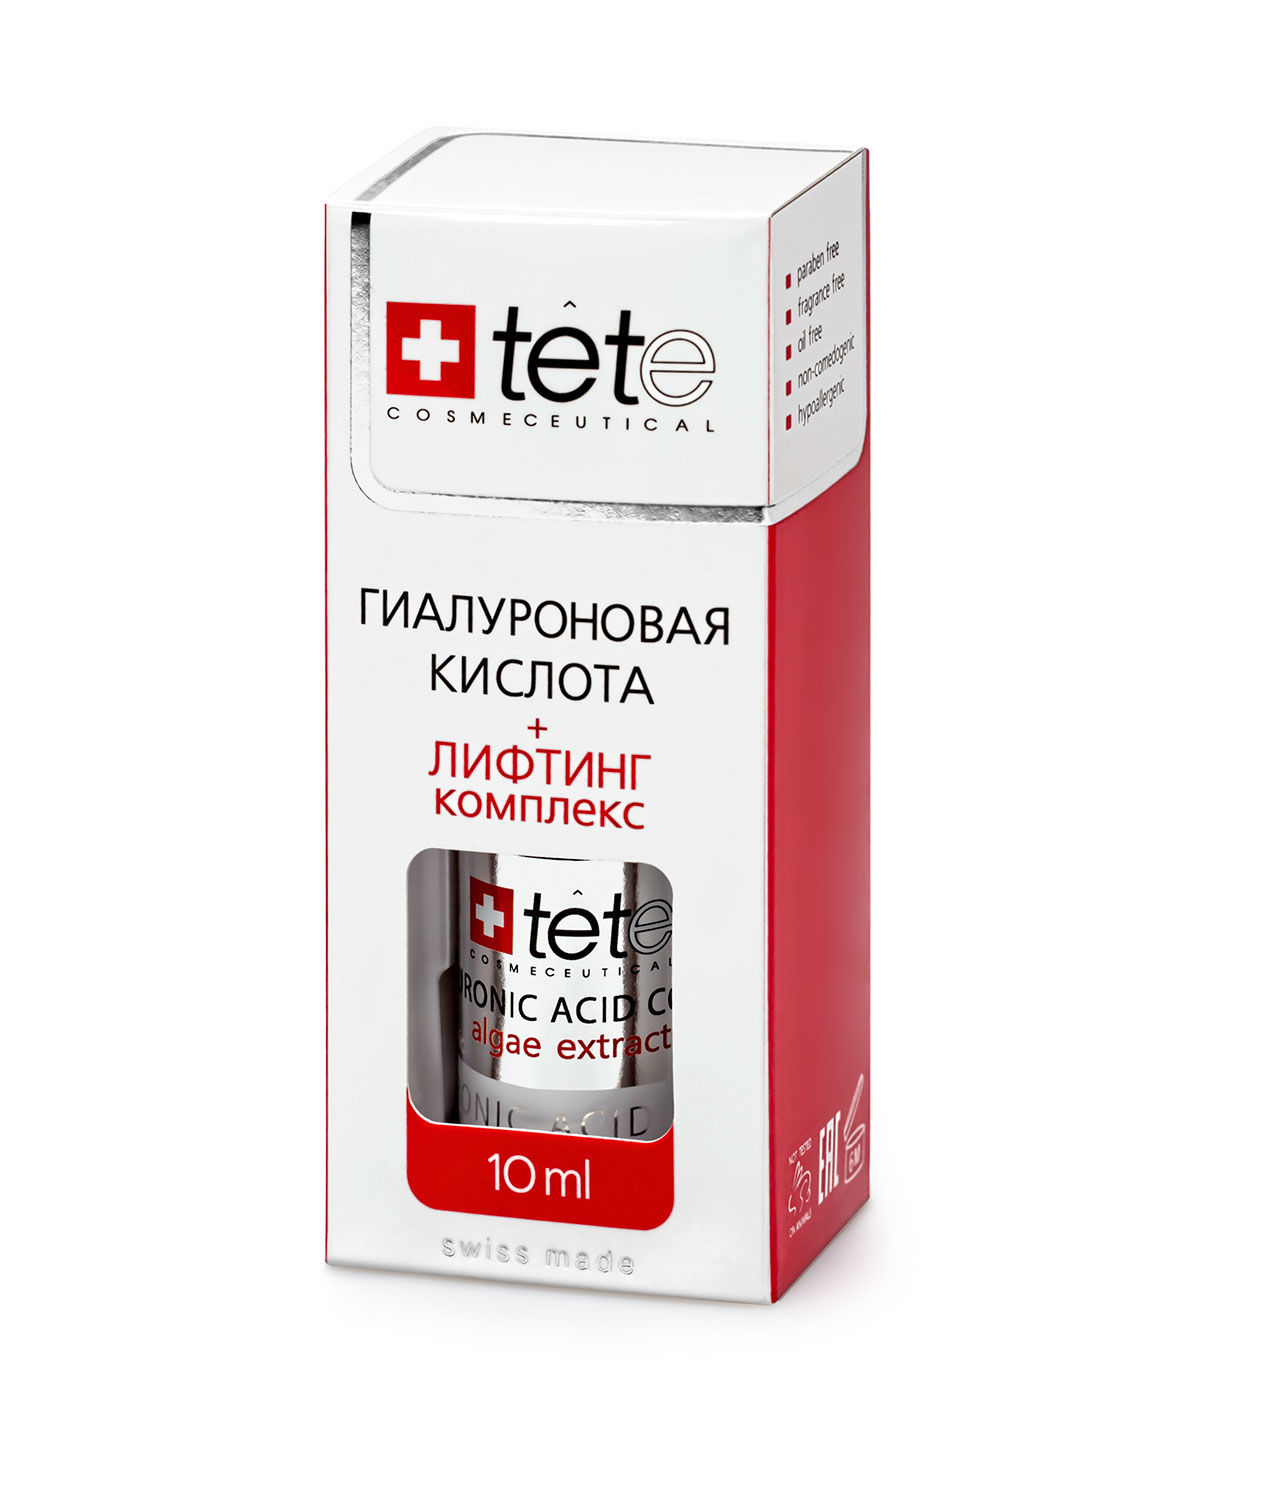 Мини гиалуроновая кислота + лифтинг комплекс TETe Cosmeceutical MINI Hyaluronic Acid Lifting Complex